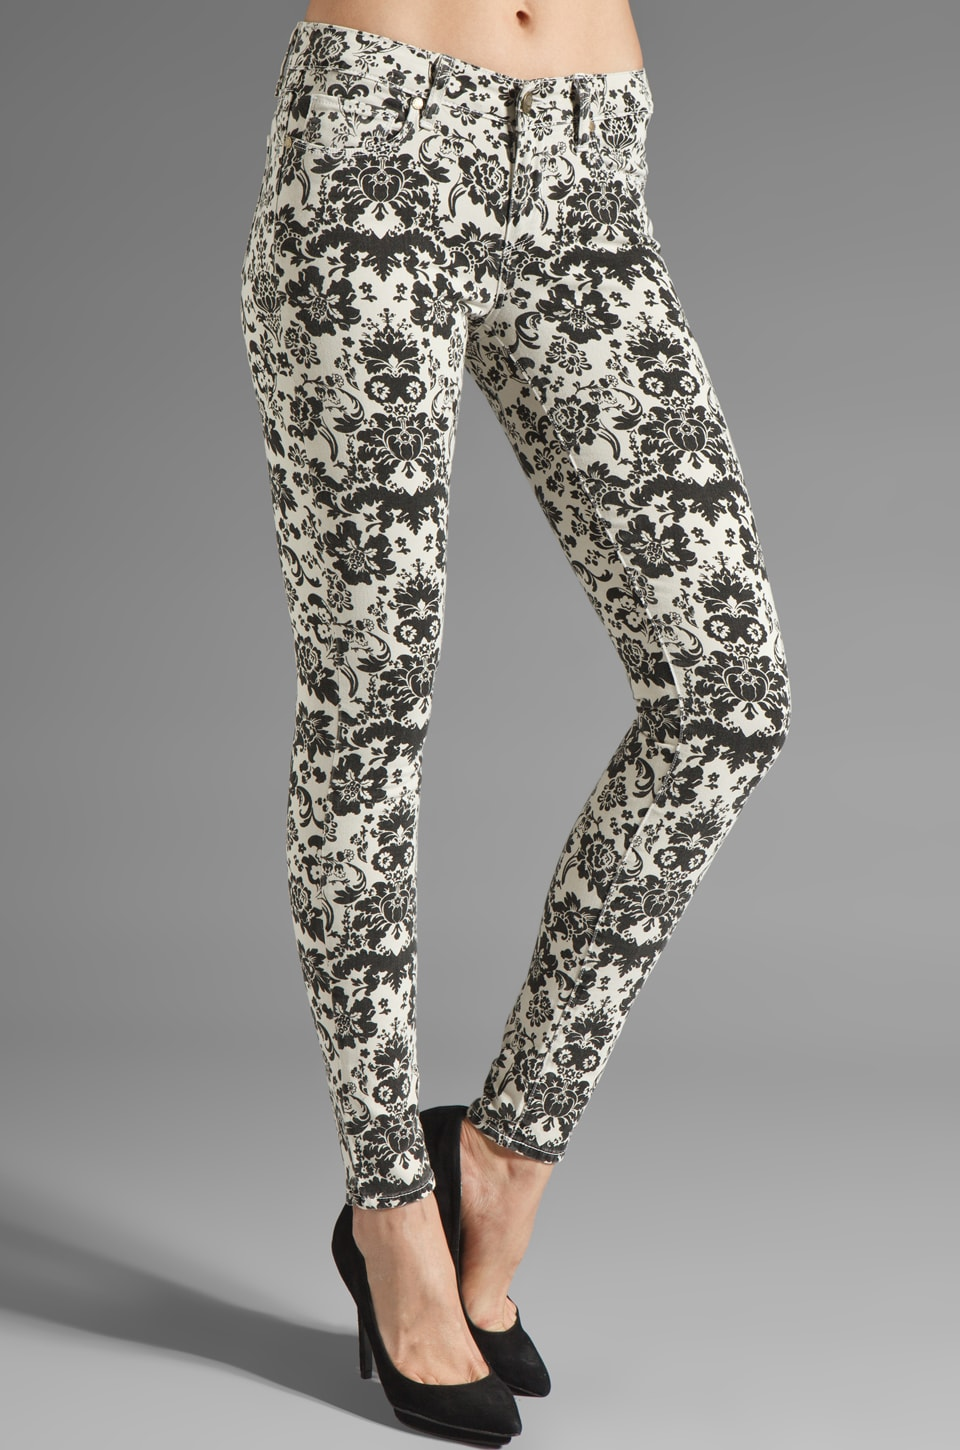 Paige Denim Verdugo Ultra Skinny in Ivory